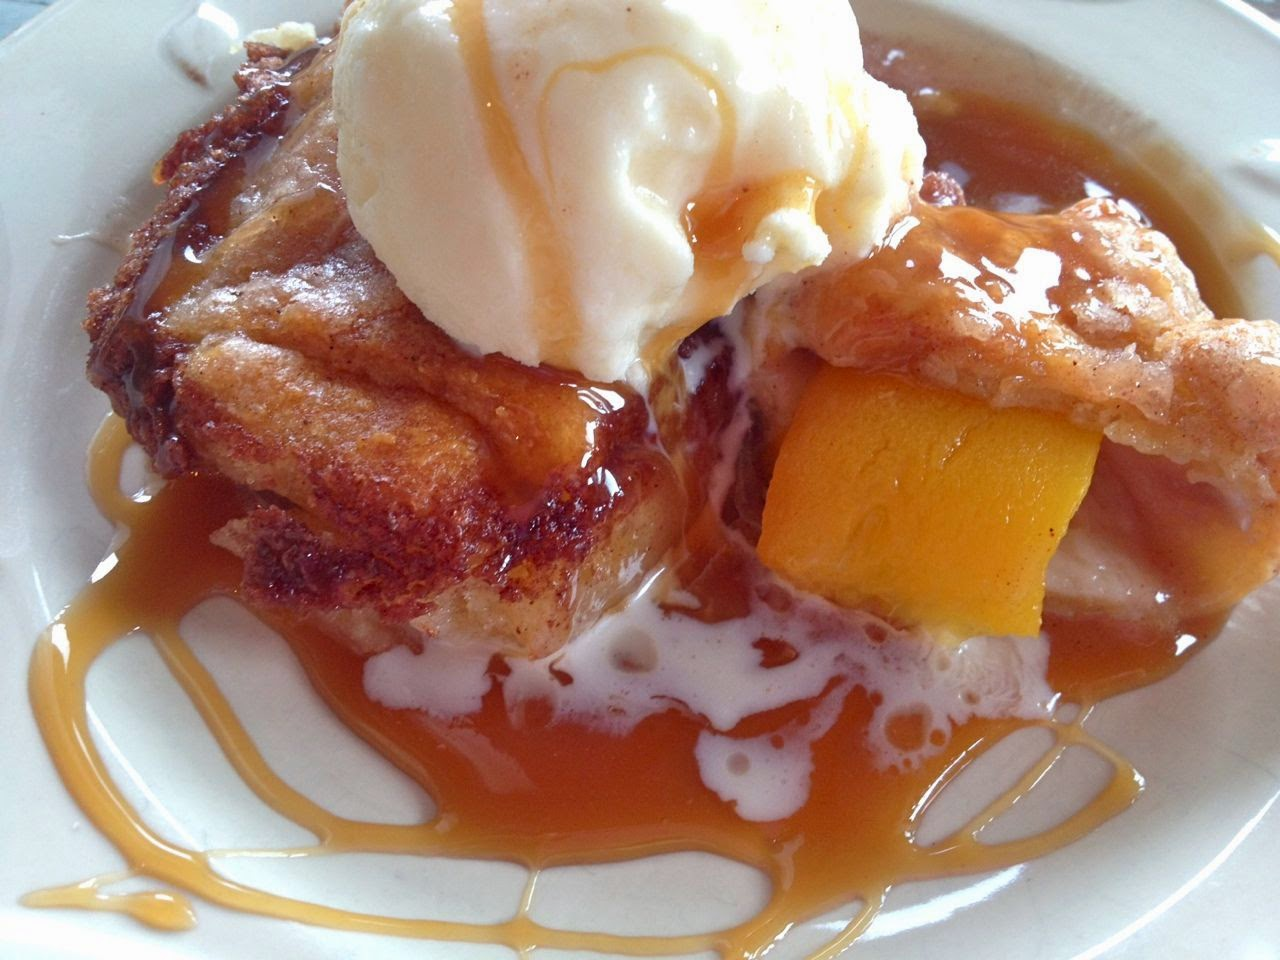 ... peach pies sweet cherry pie peach dumplings with sweet cherry sauce